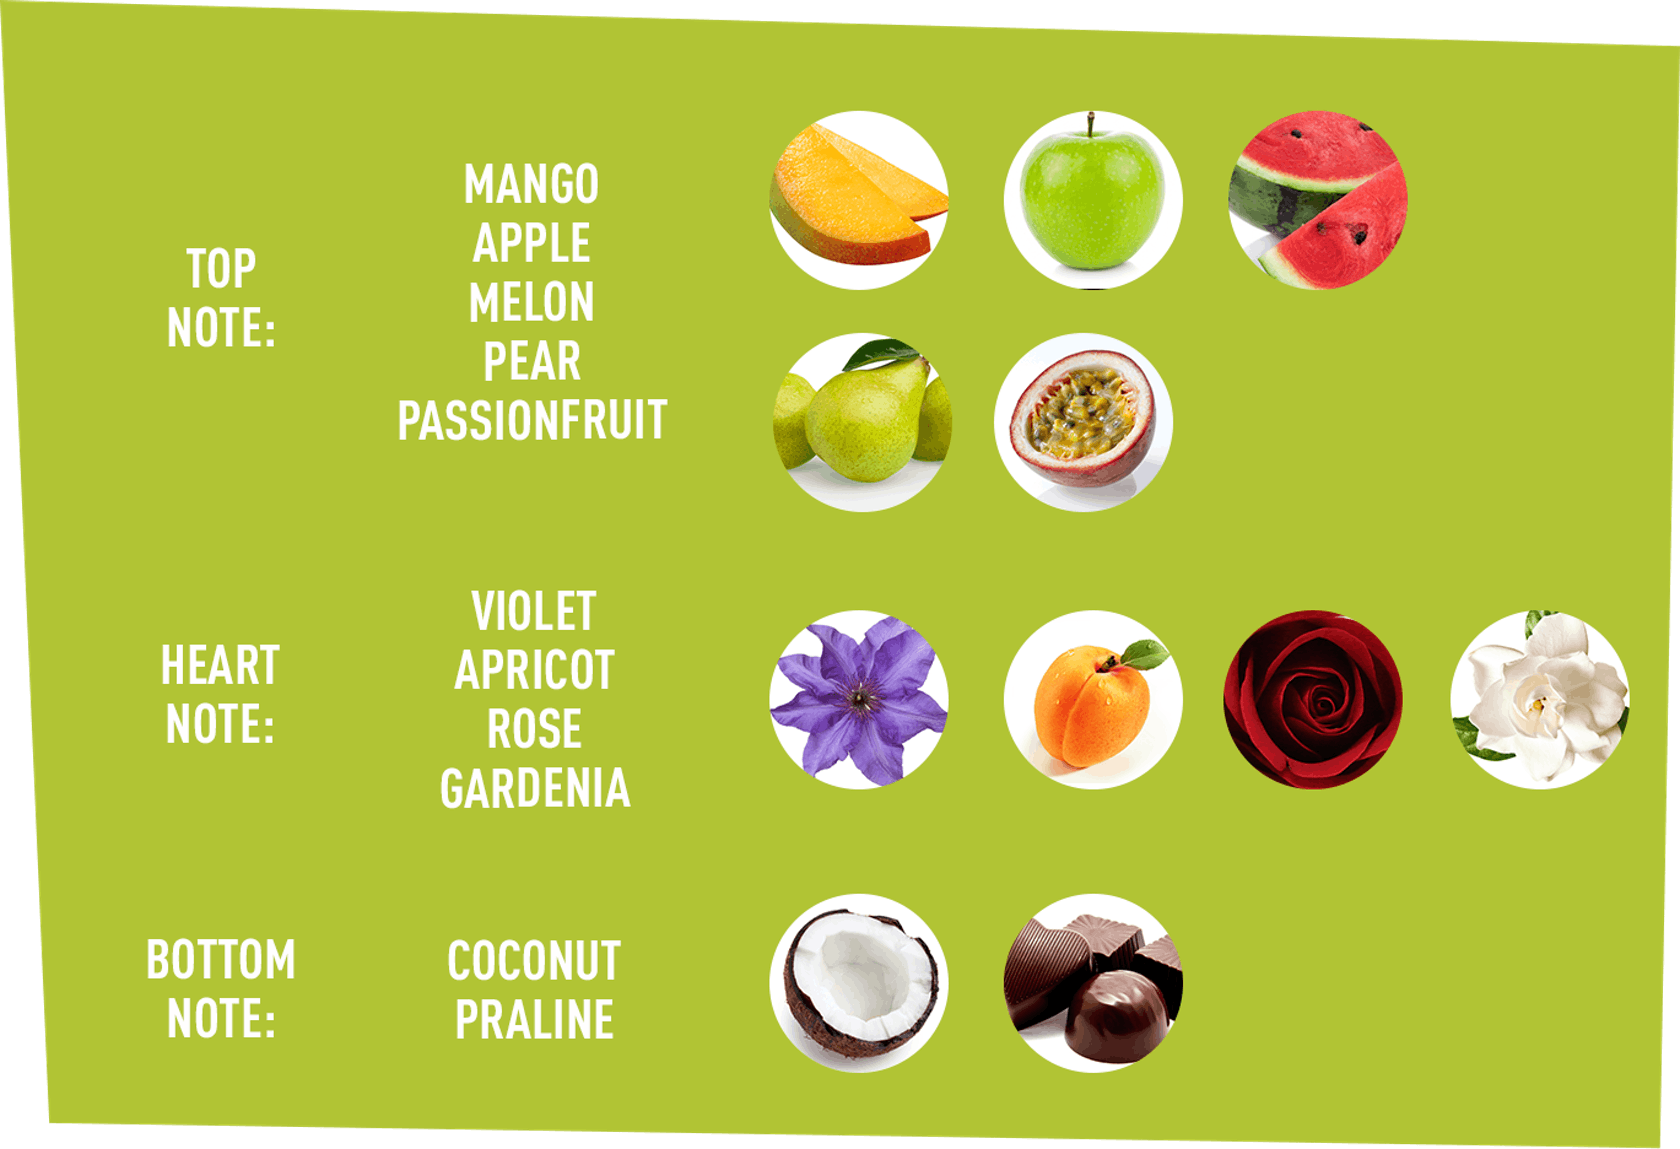 top Note: Mango, Apple, Melon, Pear, Passion Fruit | Hear Npte: Violet, Apricot, Rose, Gardenia | Bottom Note: Coconut, Praline